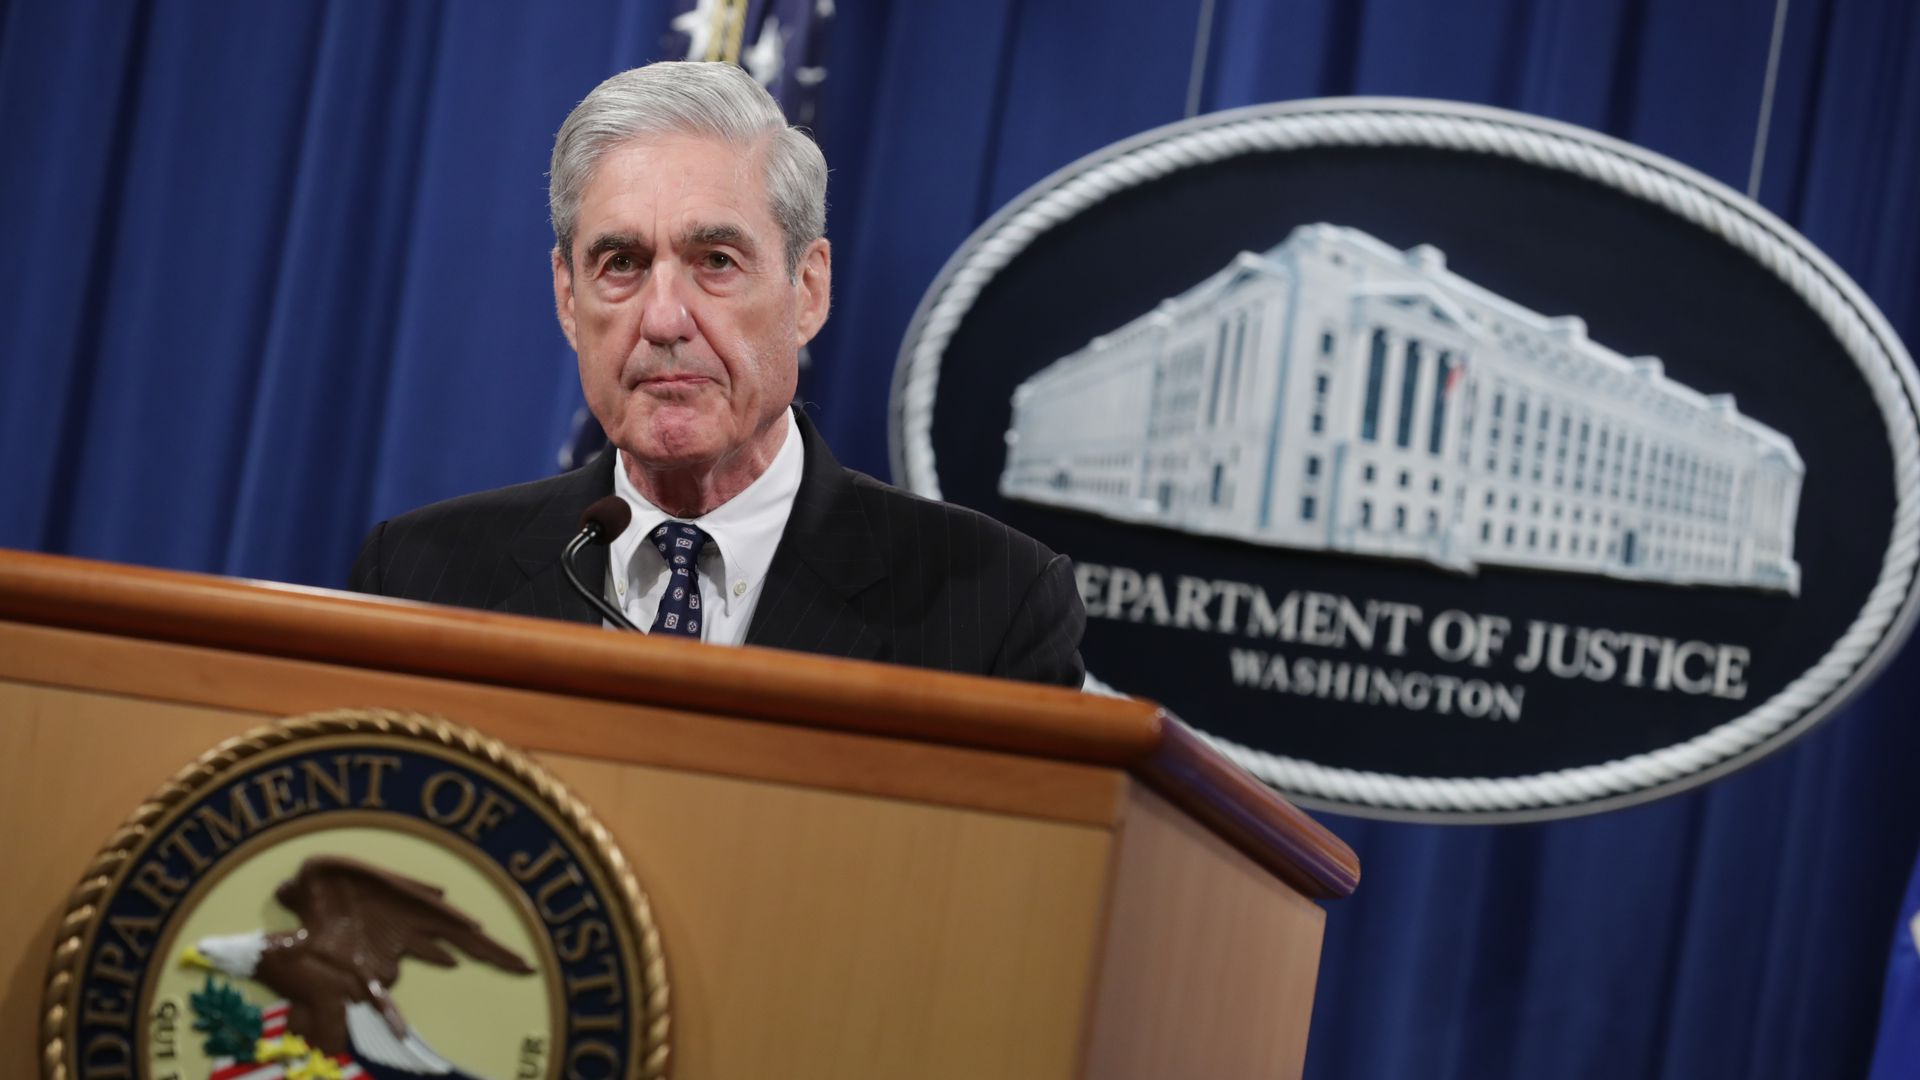 : Special Counsel Robert Mueller makes a statement about the Russia investigation on May 29, 2019 at the Justice Department in Washington, DC.